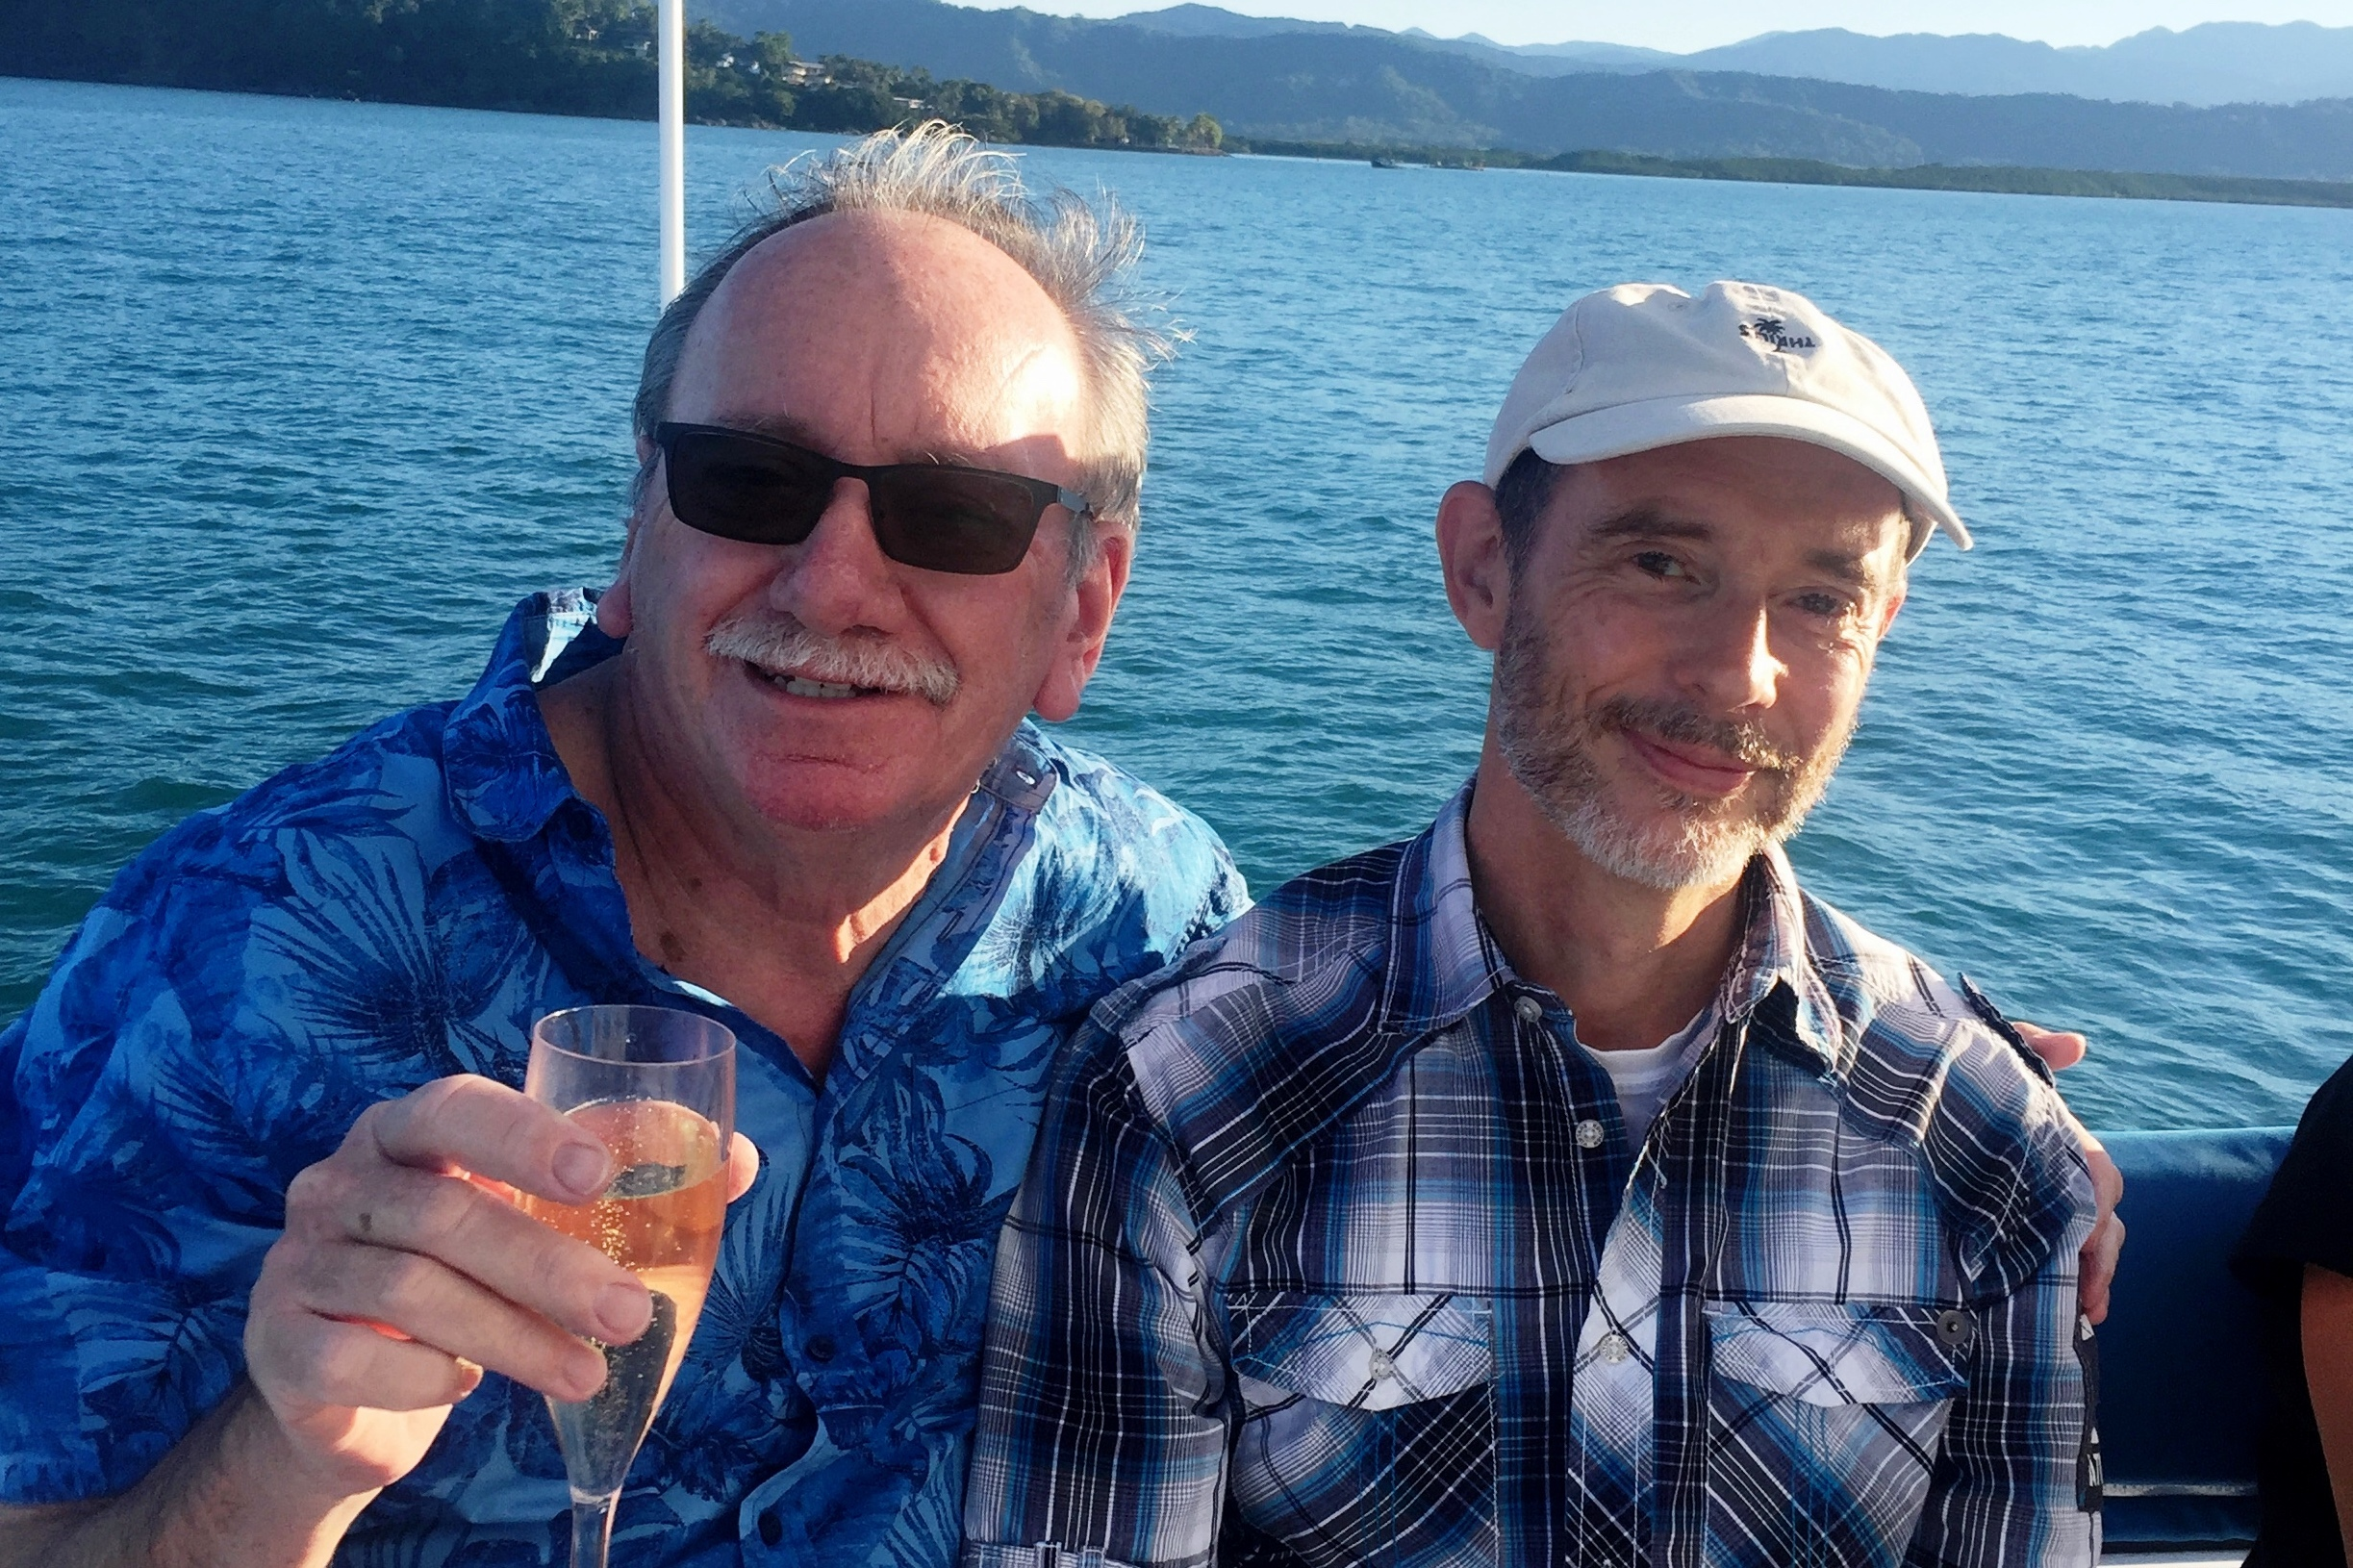 Last Dec – Sunset Cruise / Work Christmas functions – Scleral only